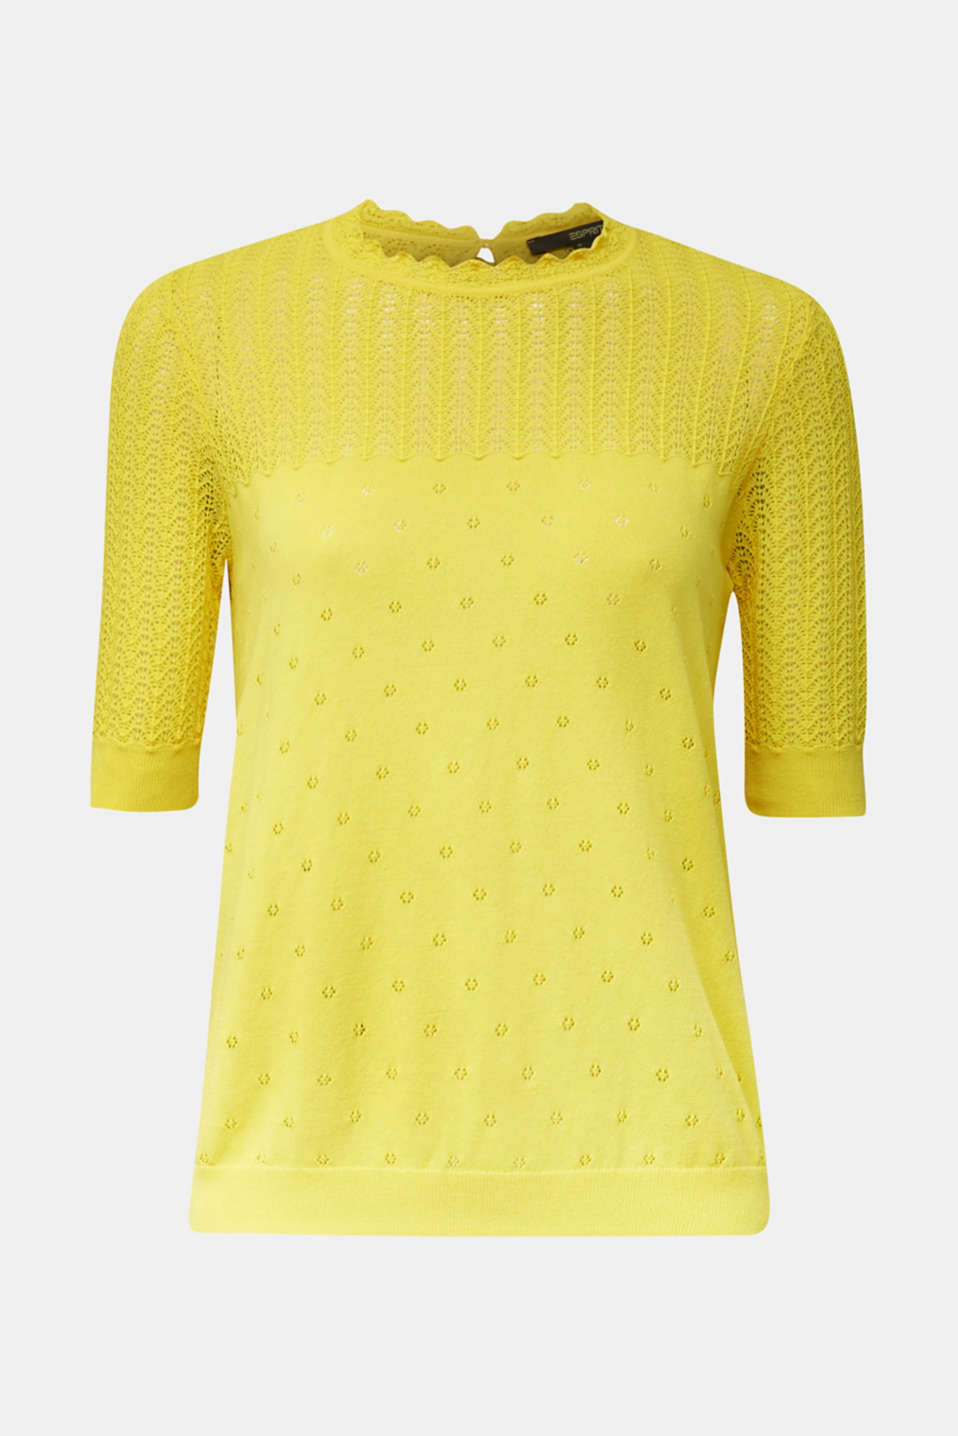 Short-sleeved jumper with an openwork pattern and lace, YELLOW, detail image number 7